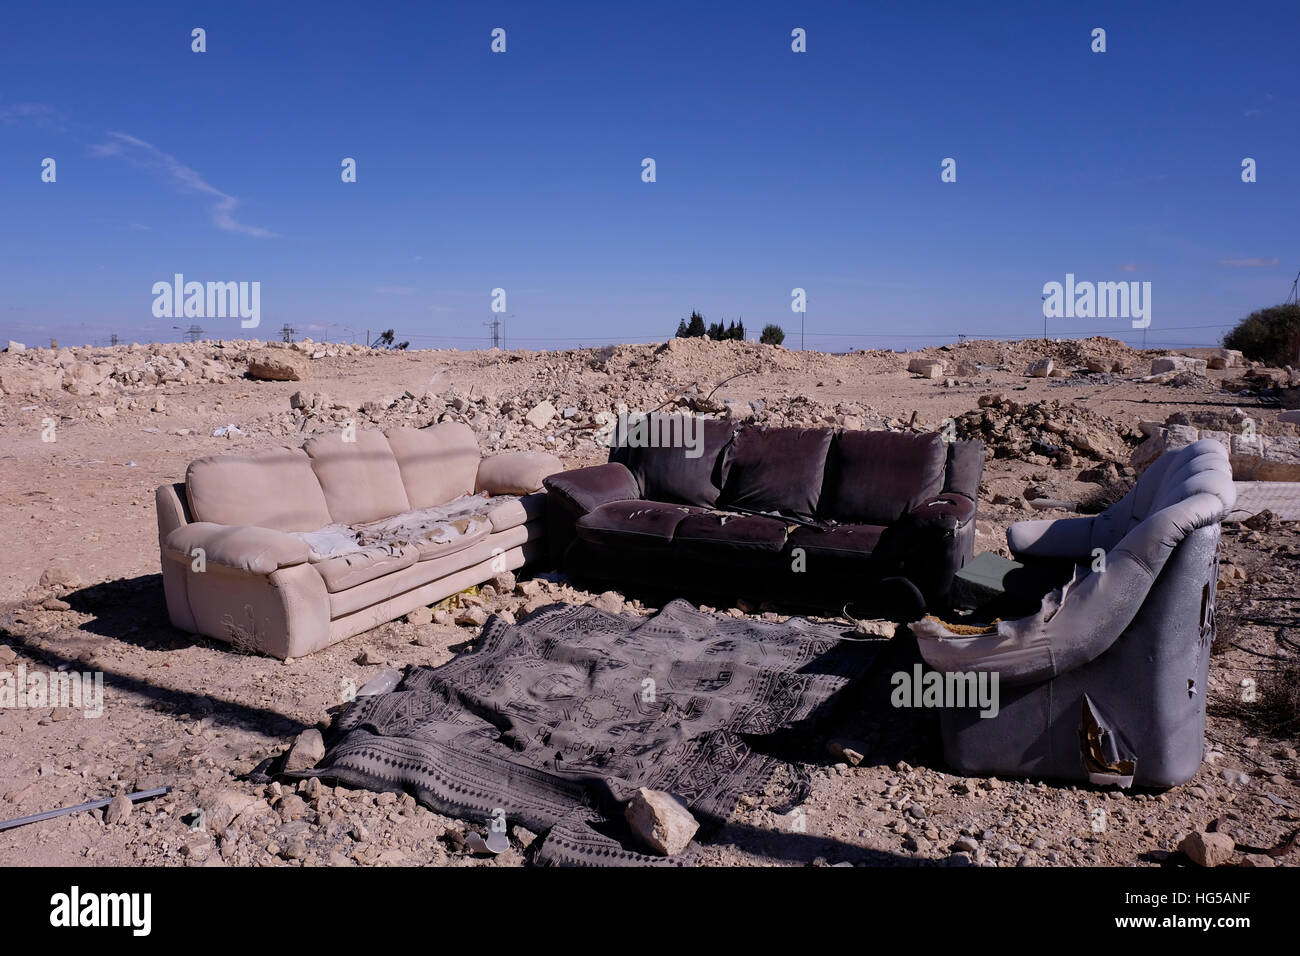 Abandoned Sofa and couches in Mitzpe Ramon a town in the Negev desert on 03 January 2016.  Mitzpe Ramon comprises - Stock Image